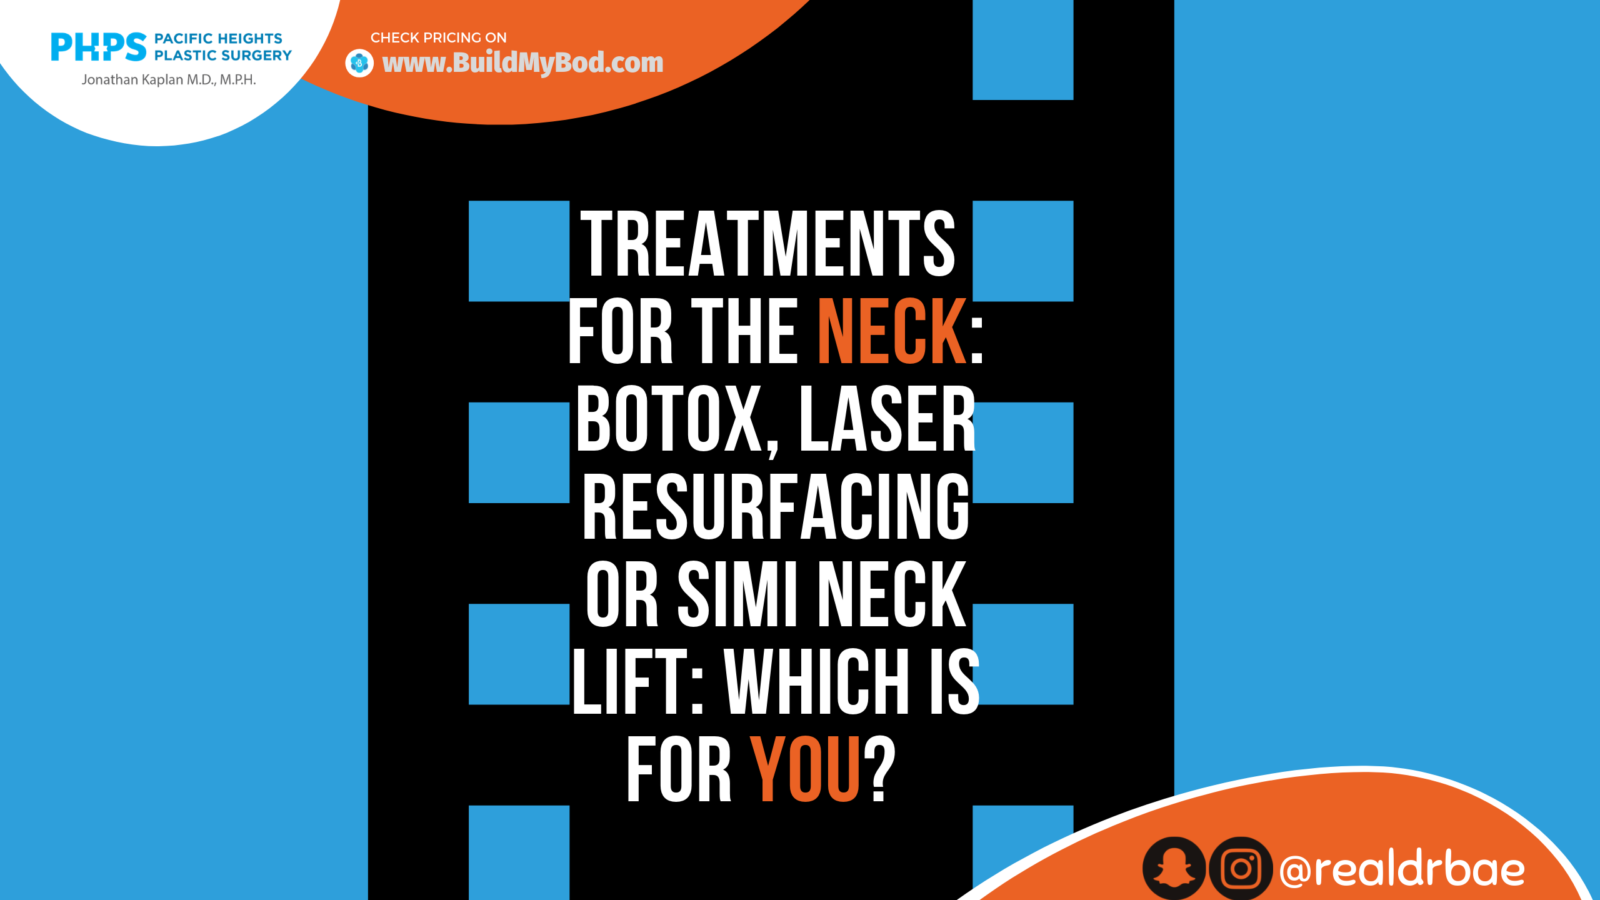 treatments for the neck